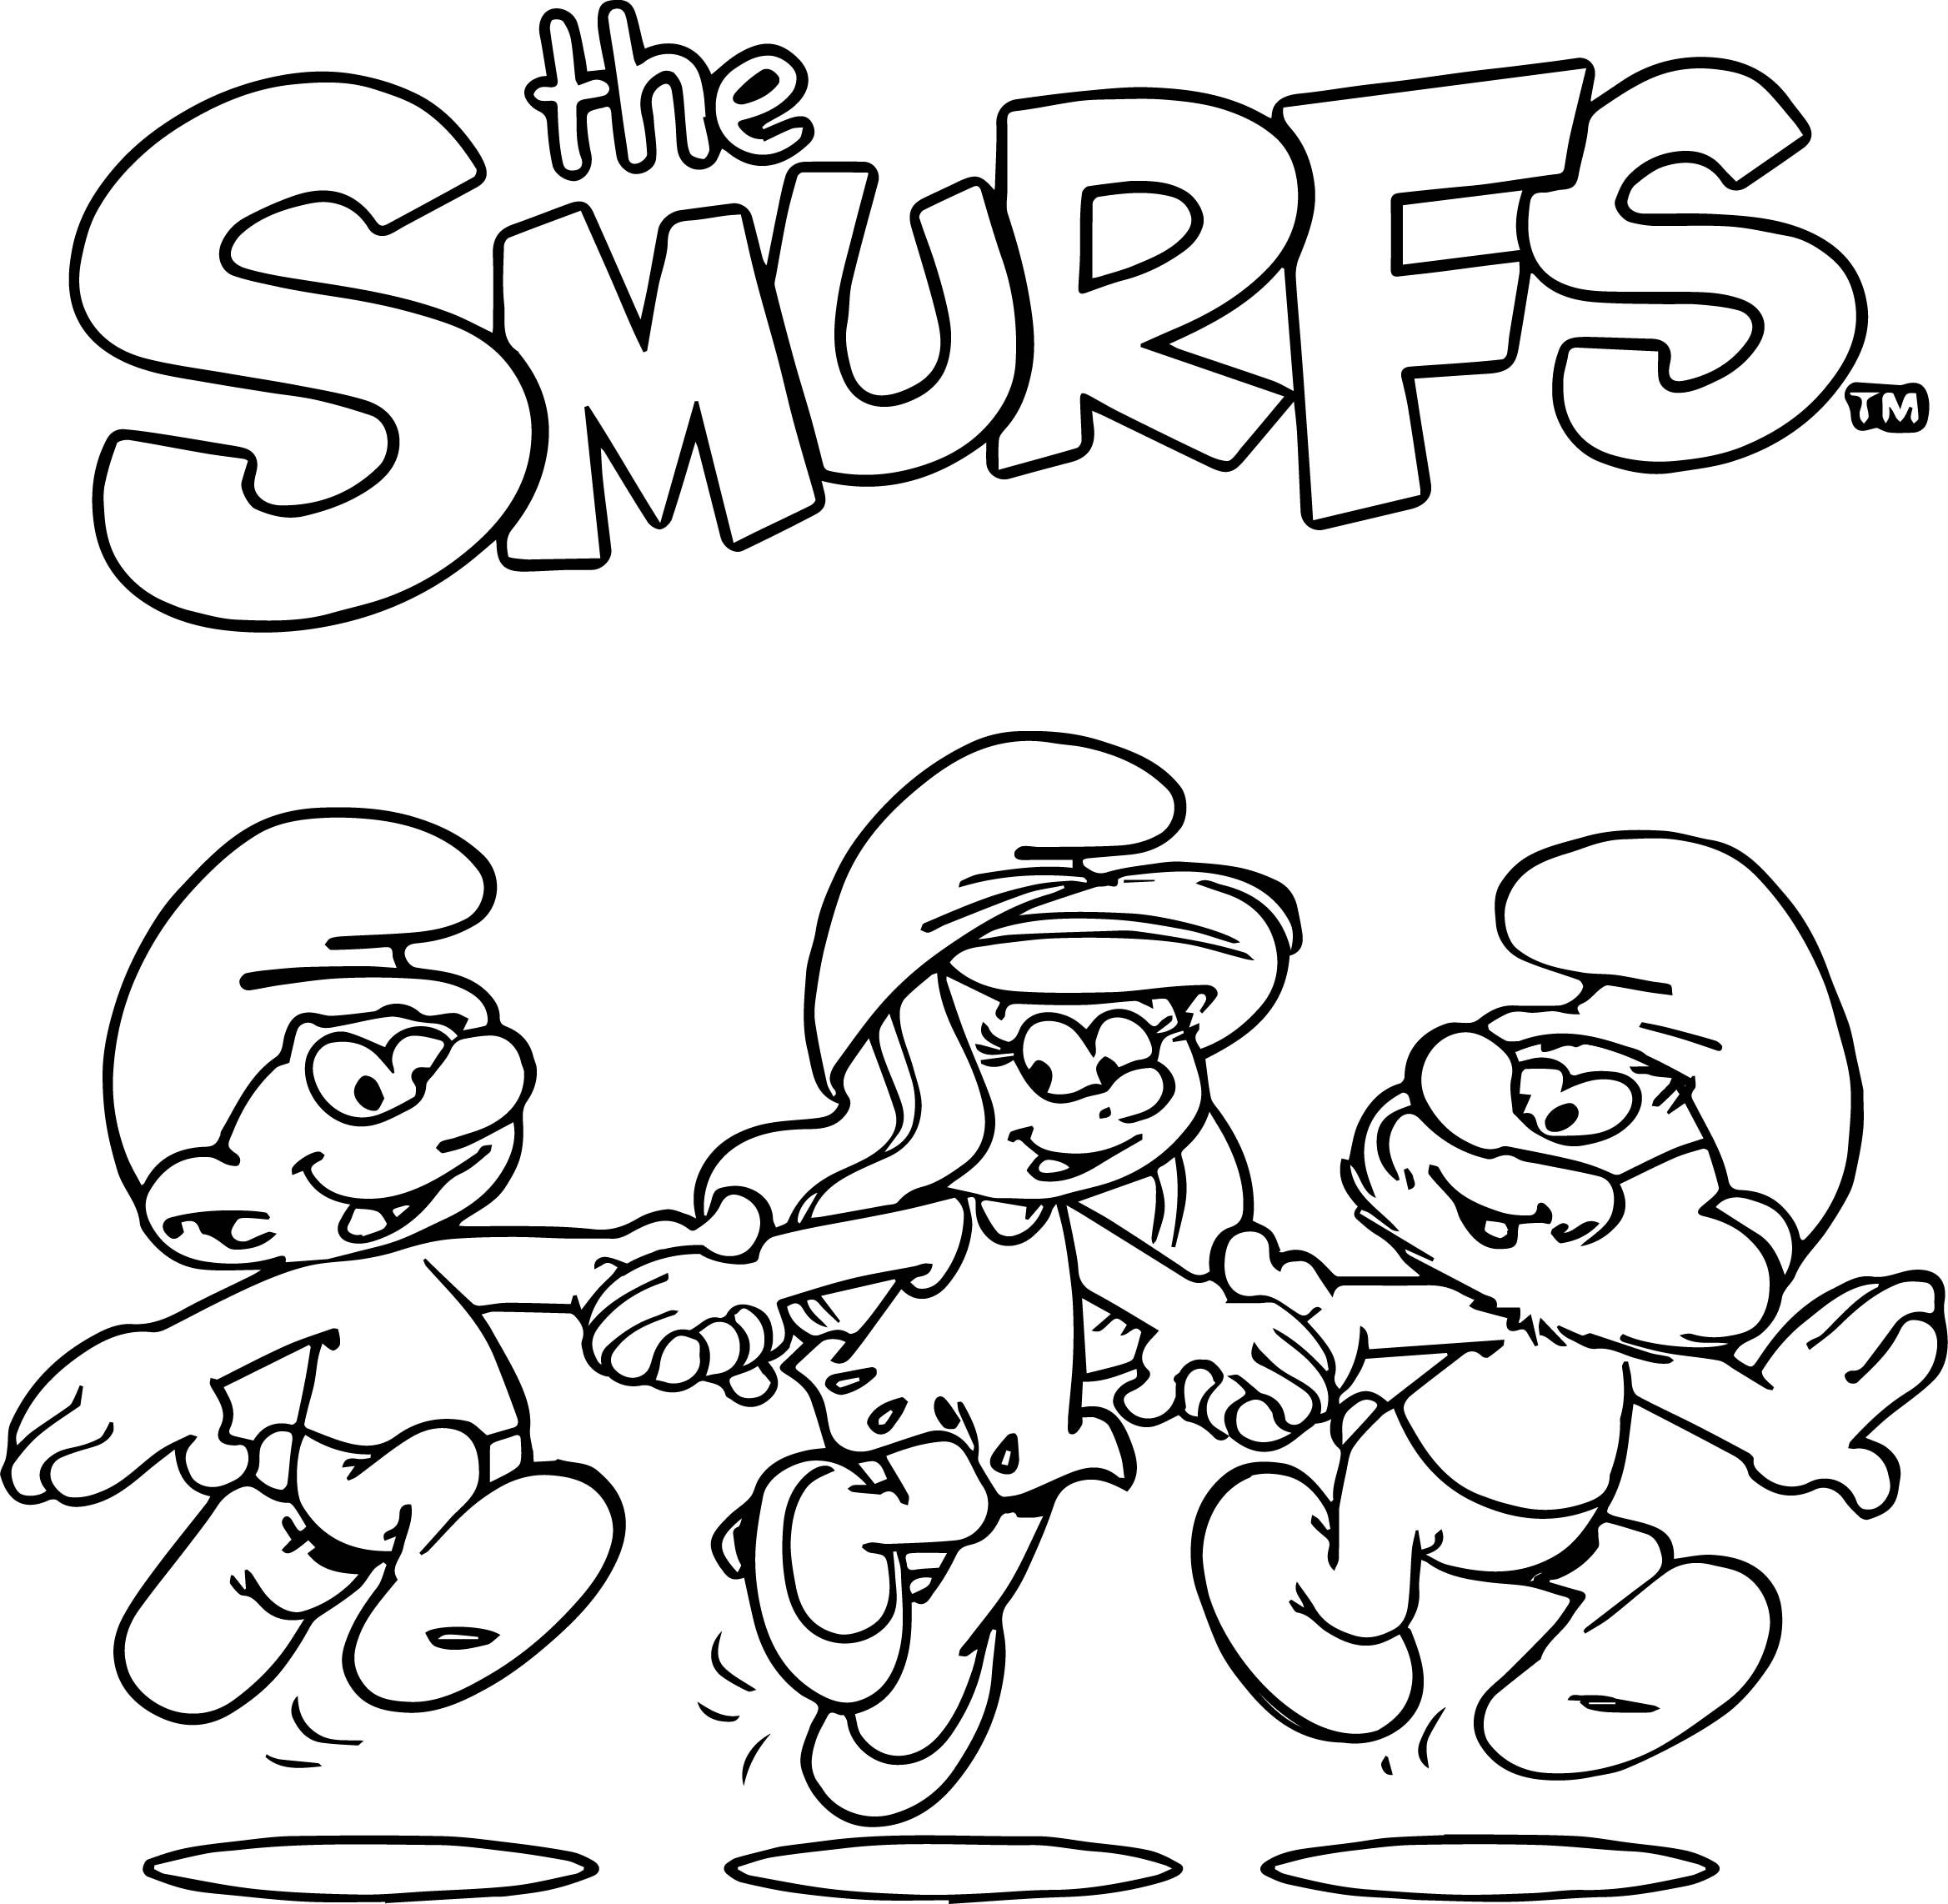 smurfs coloring book smurf coloring pages to download and print for free smurfs book coloring